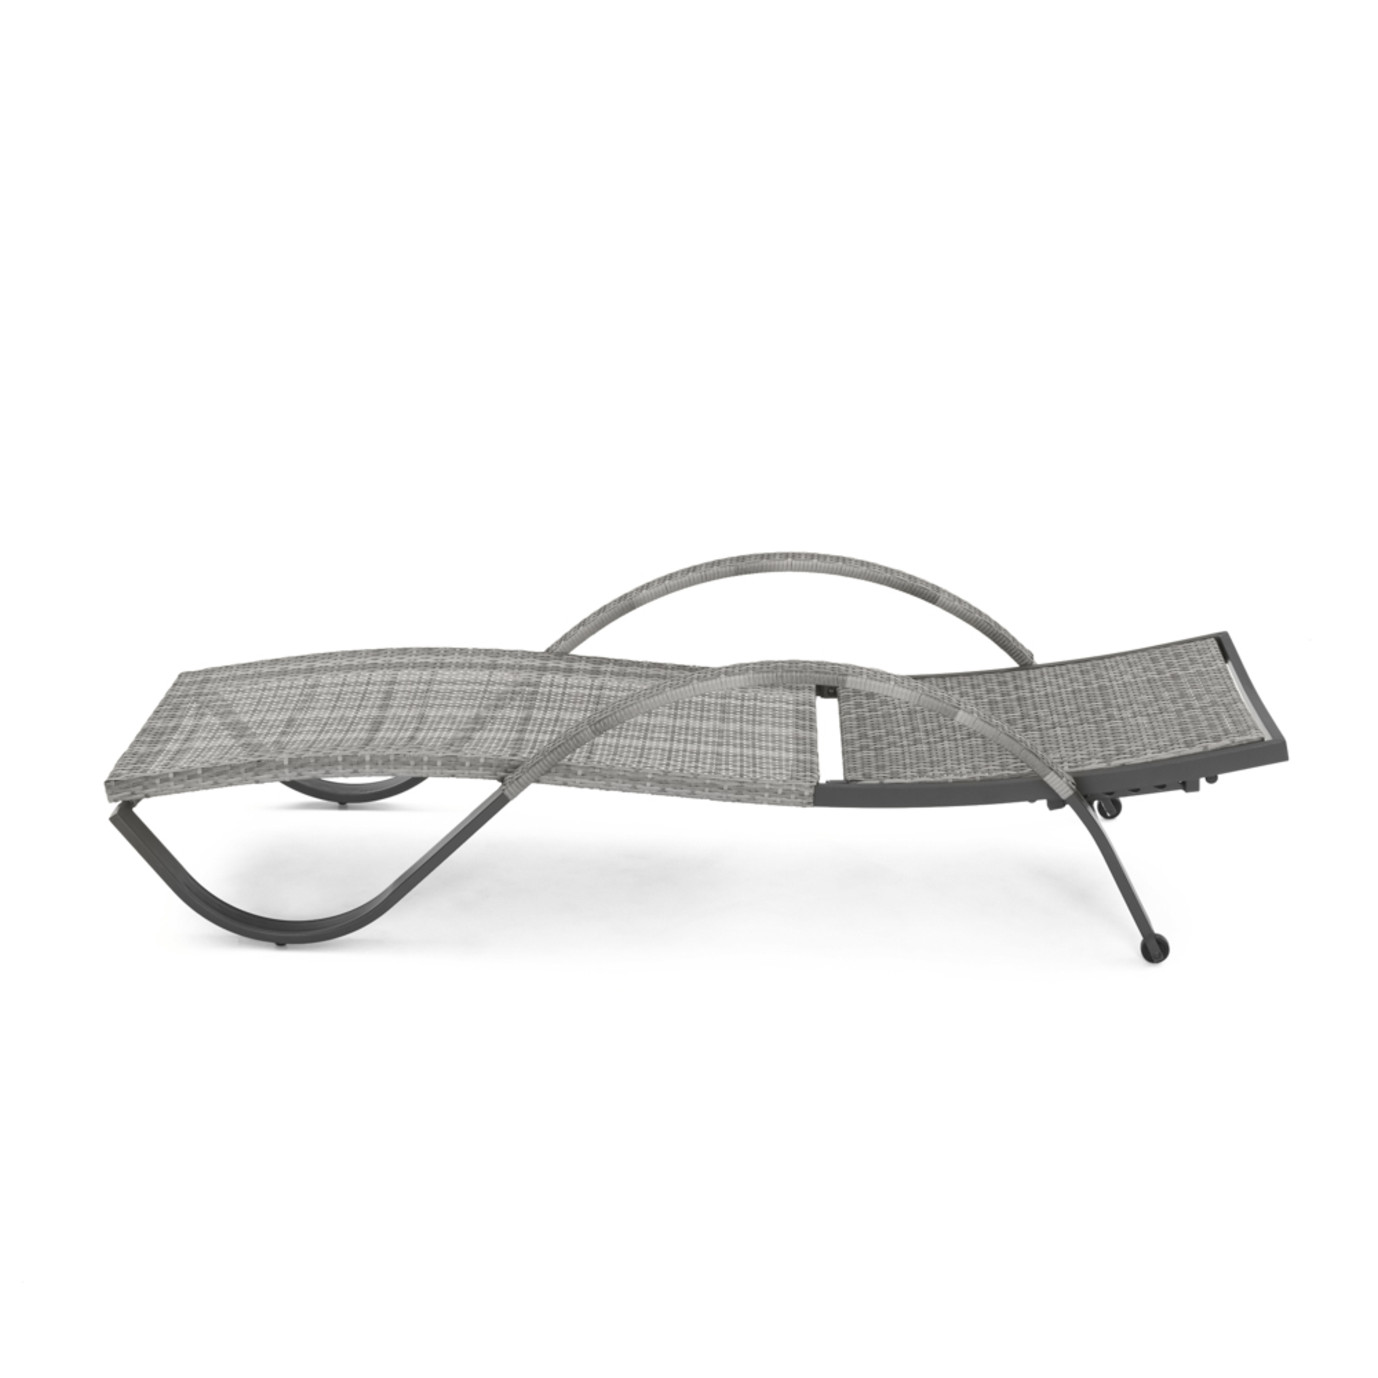 Cannes™ Chaise Lounge 2pk - Spa Blue